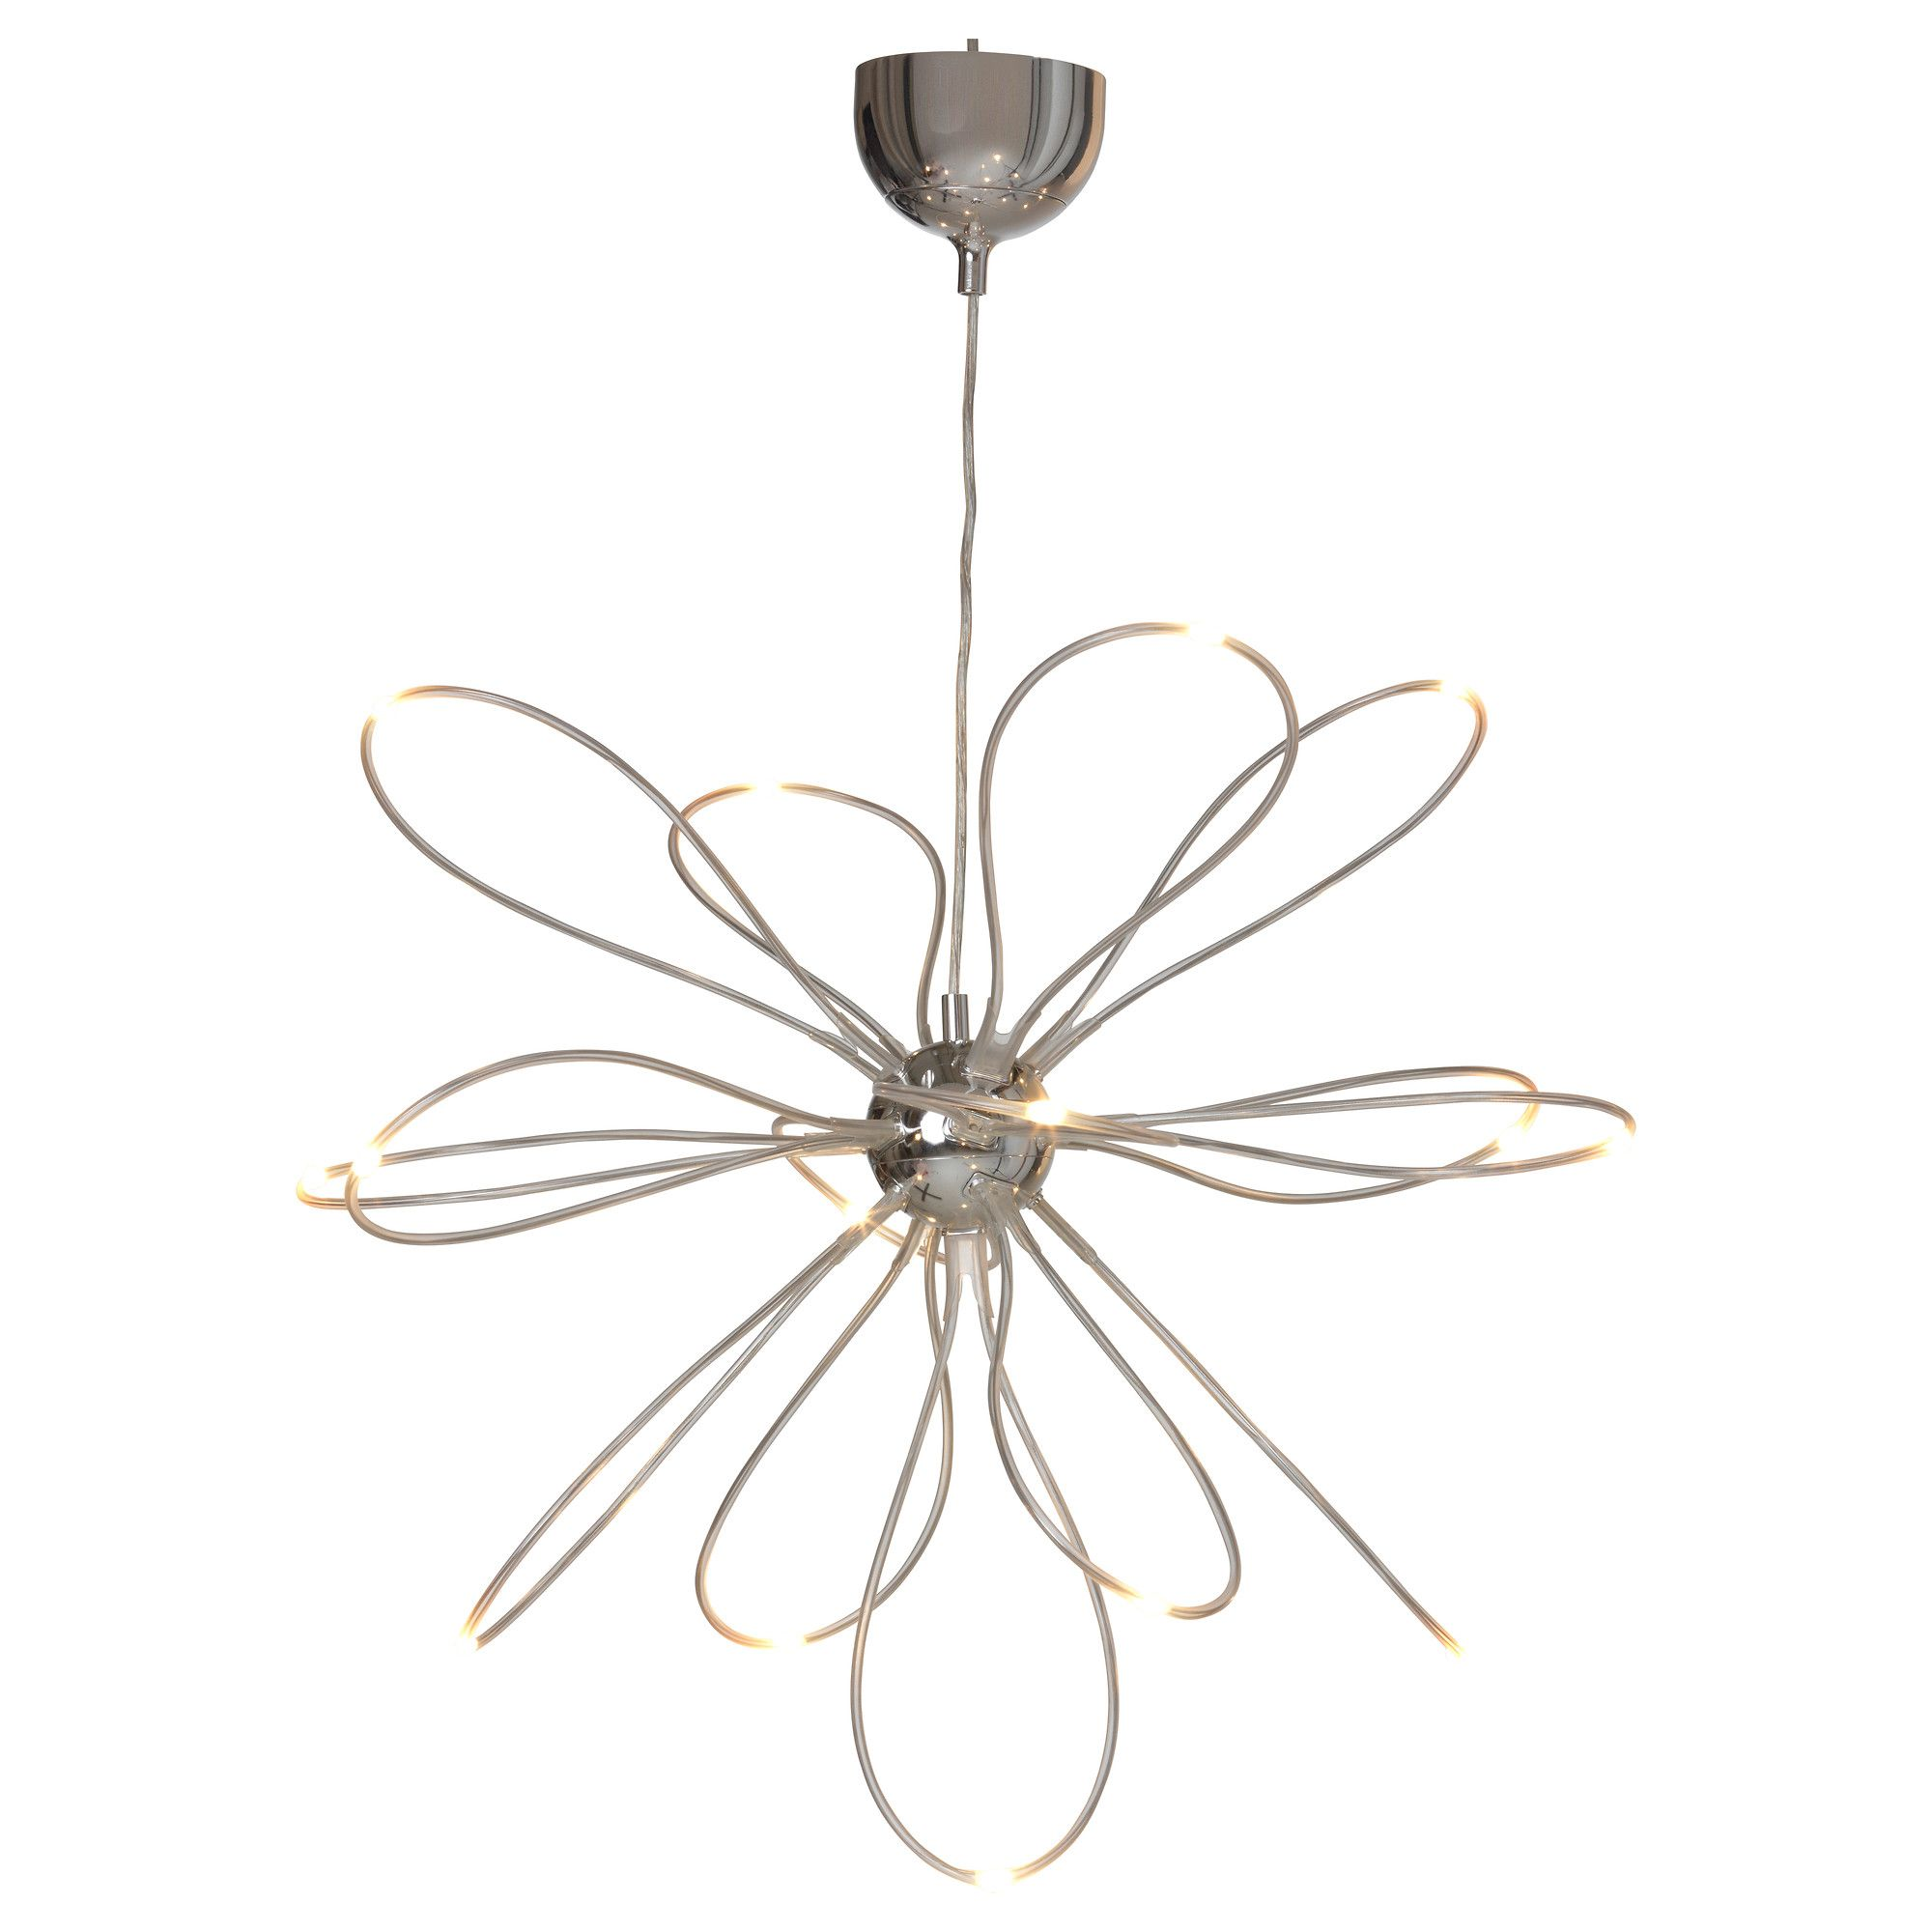 Onsj led chandelier from ikea a sunlight flower twinkling stars onsj led chandelier from ikea a sunlight flower twinkling stars or electrons in an atom a miniature of the universe you can have it all in your home aloadofball Choice Image